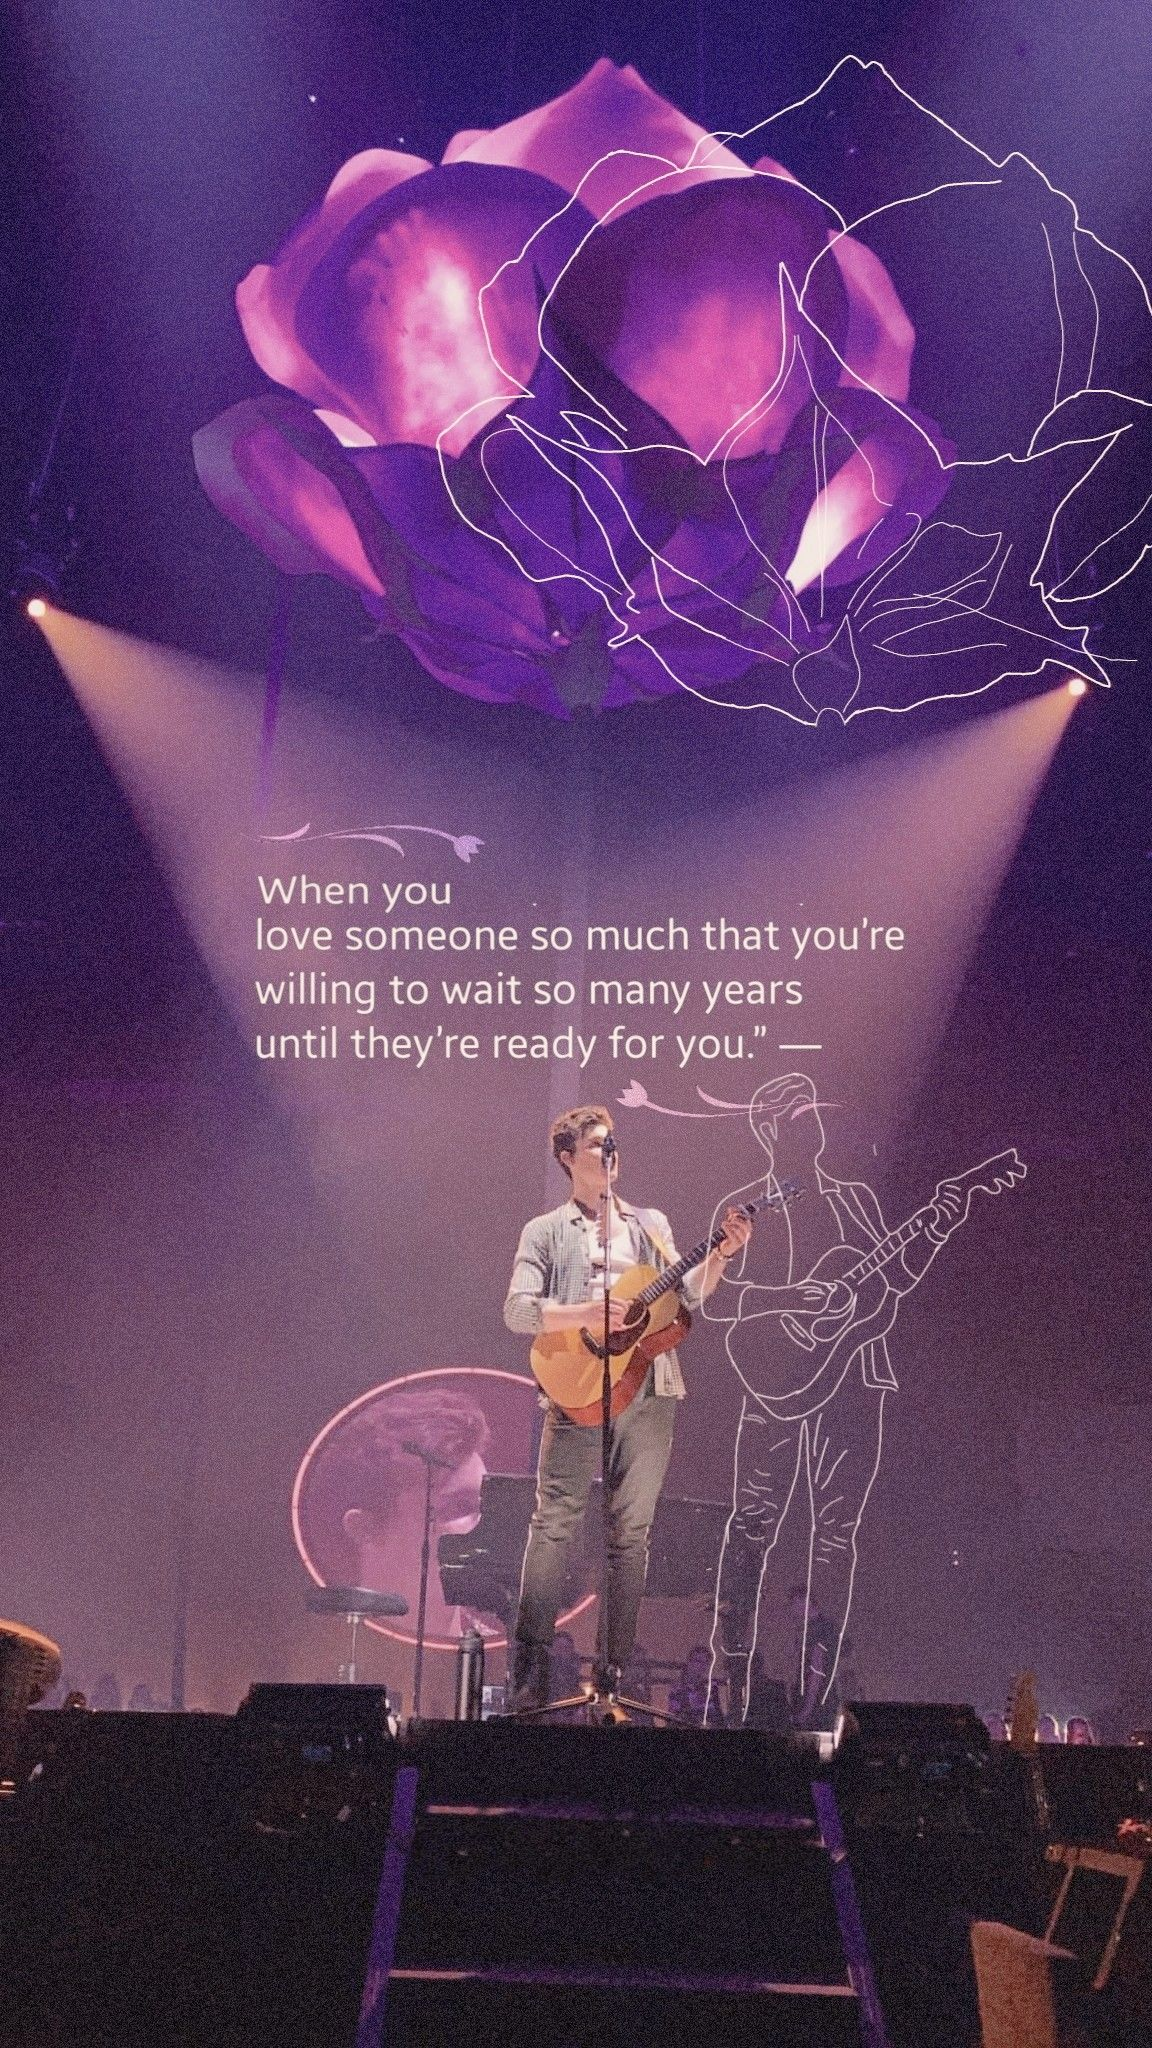 Shawn Mendes Wallpaper 🌸❤️🌸 #shawnmendes #shawnmendeswallpaper #wallpaper #music #love #passion #guitarboy #quotes